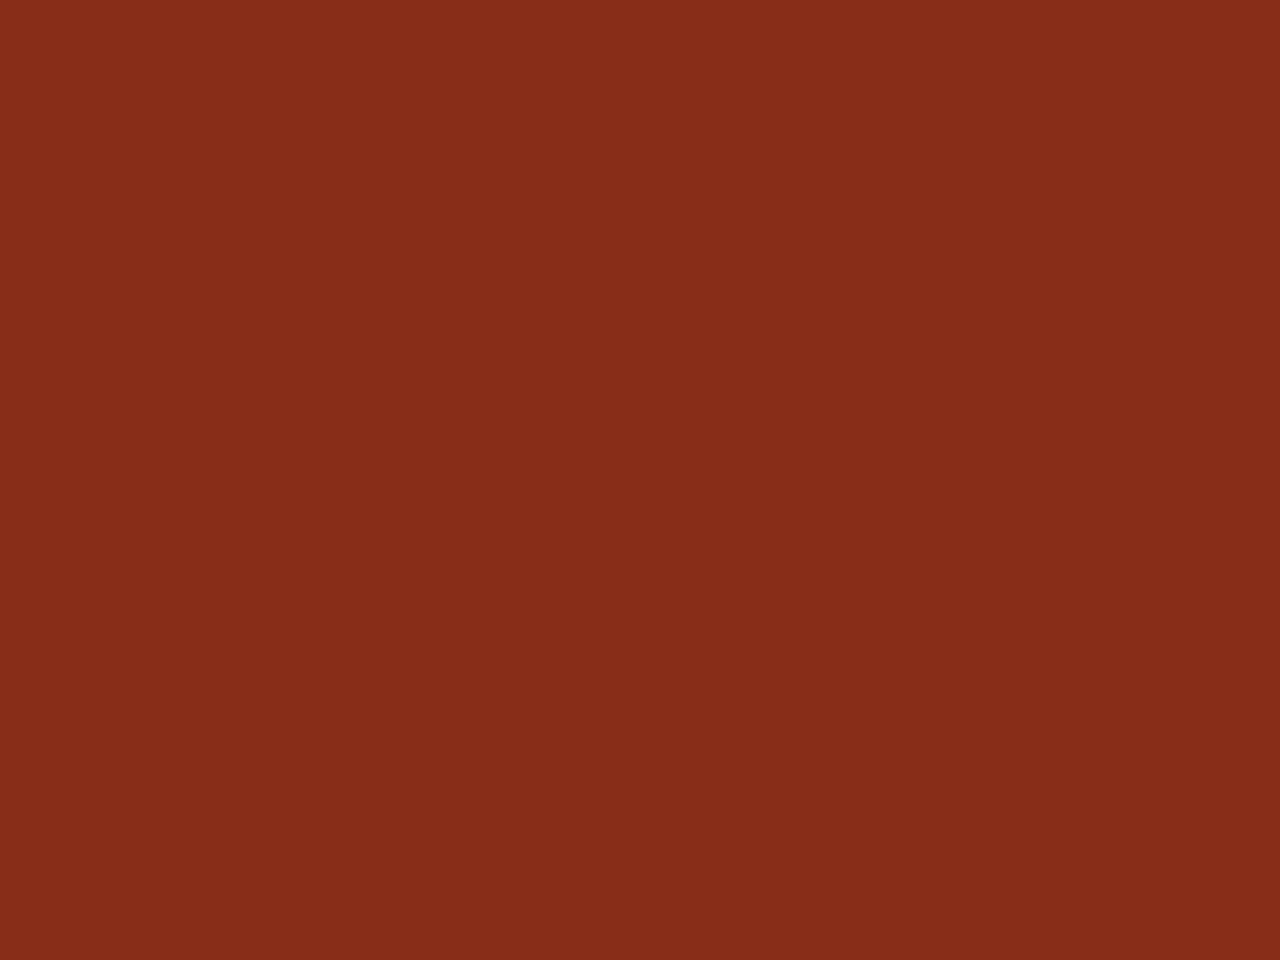 1280x960 Sienna Solid Color Background